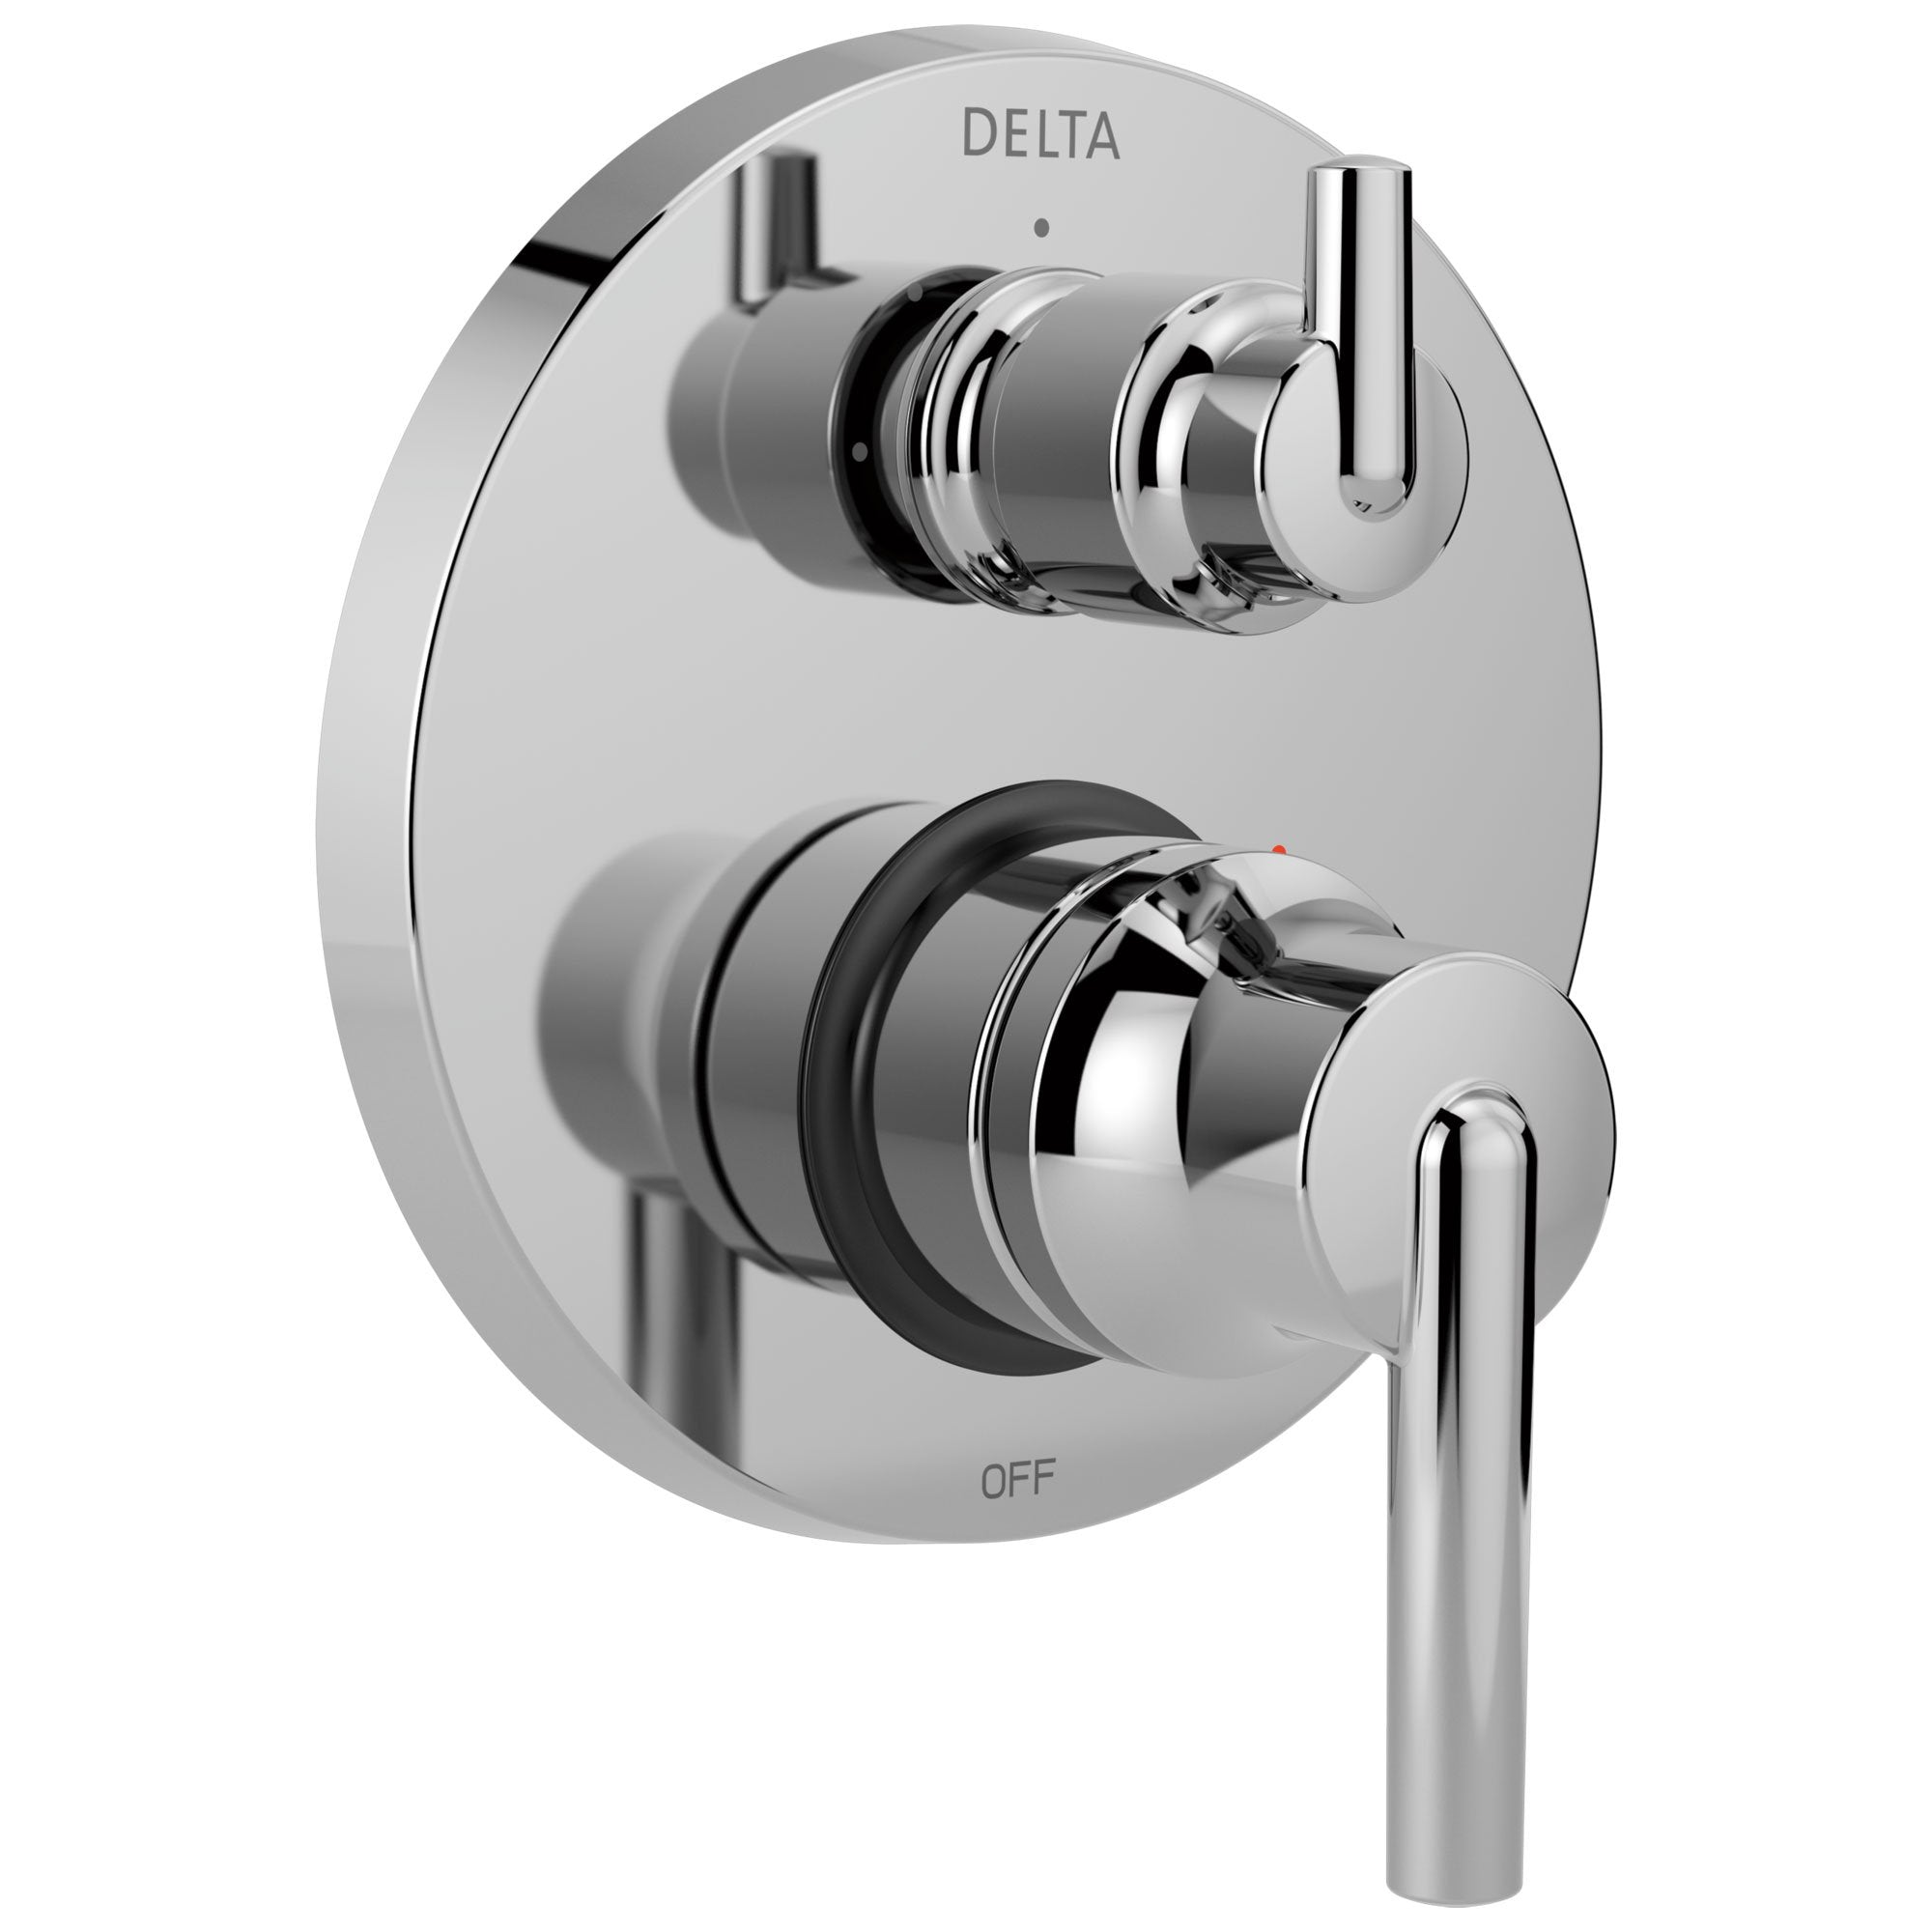 Delicieux Delta Trinsic Chrome Monitor 14 Shower Faucet Valve Trim Control Handle  With 3 Setting Integrated